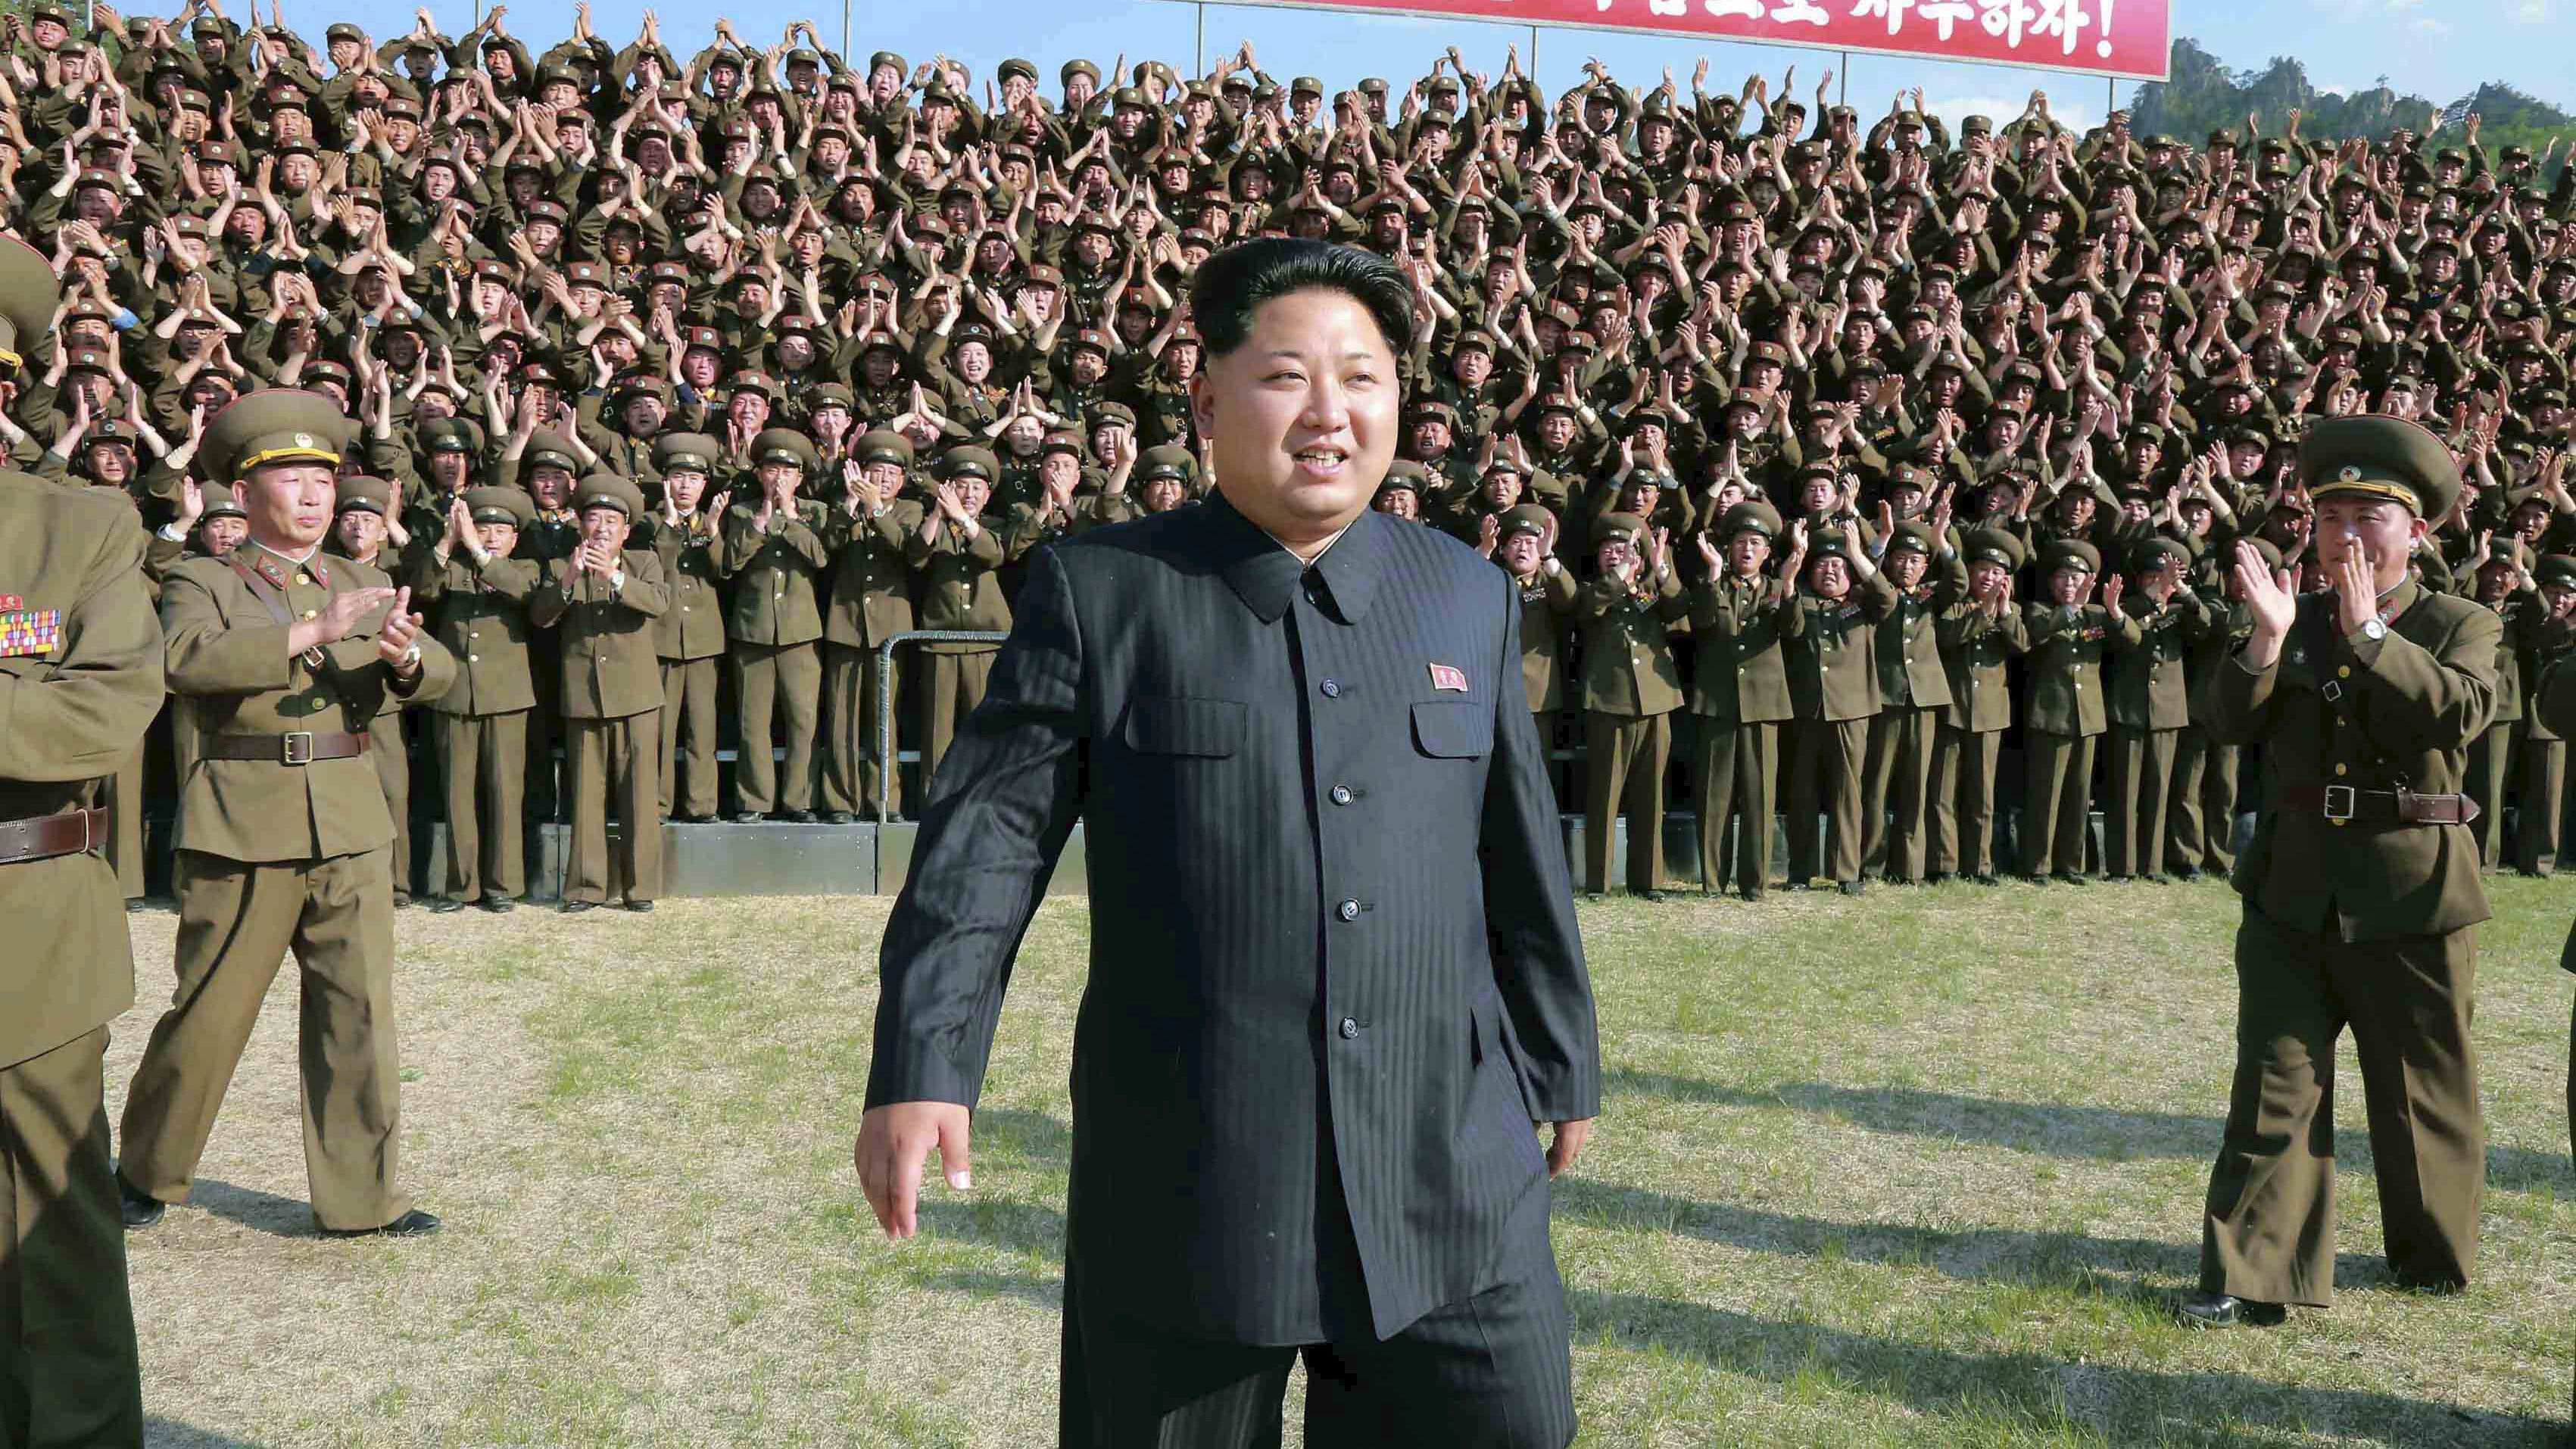 North Korean leader Kim Jong Un makes an inspection at the commanding headquarters of the 264 Combined Forces, in this undated photo released by North Korea's Korean Central News Agency (KCNA) in Pyongyang on May 24, 2015.